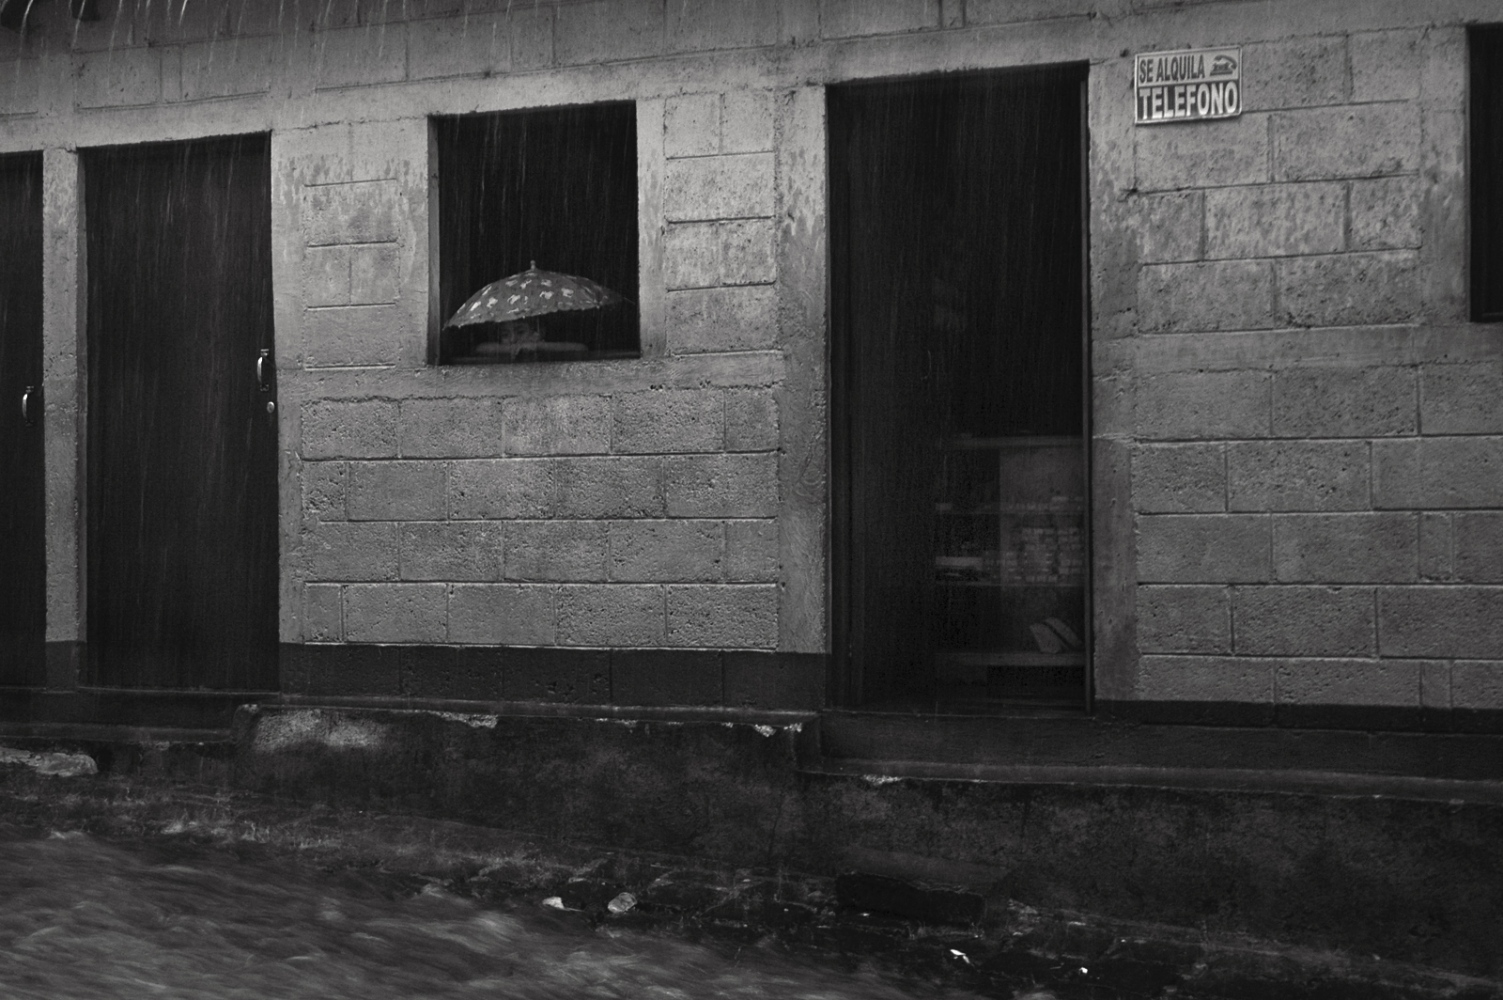 Main street in the rain, San Pedro, Guatemala